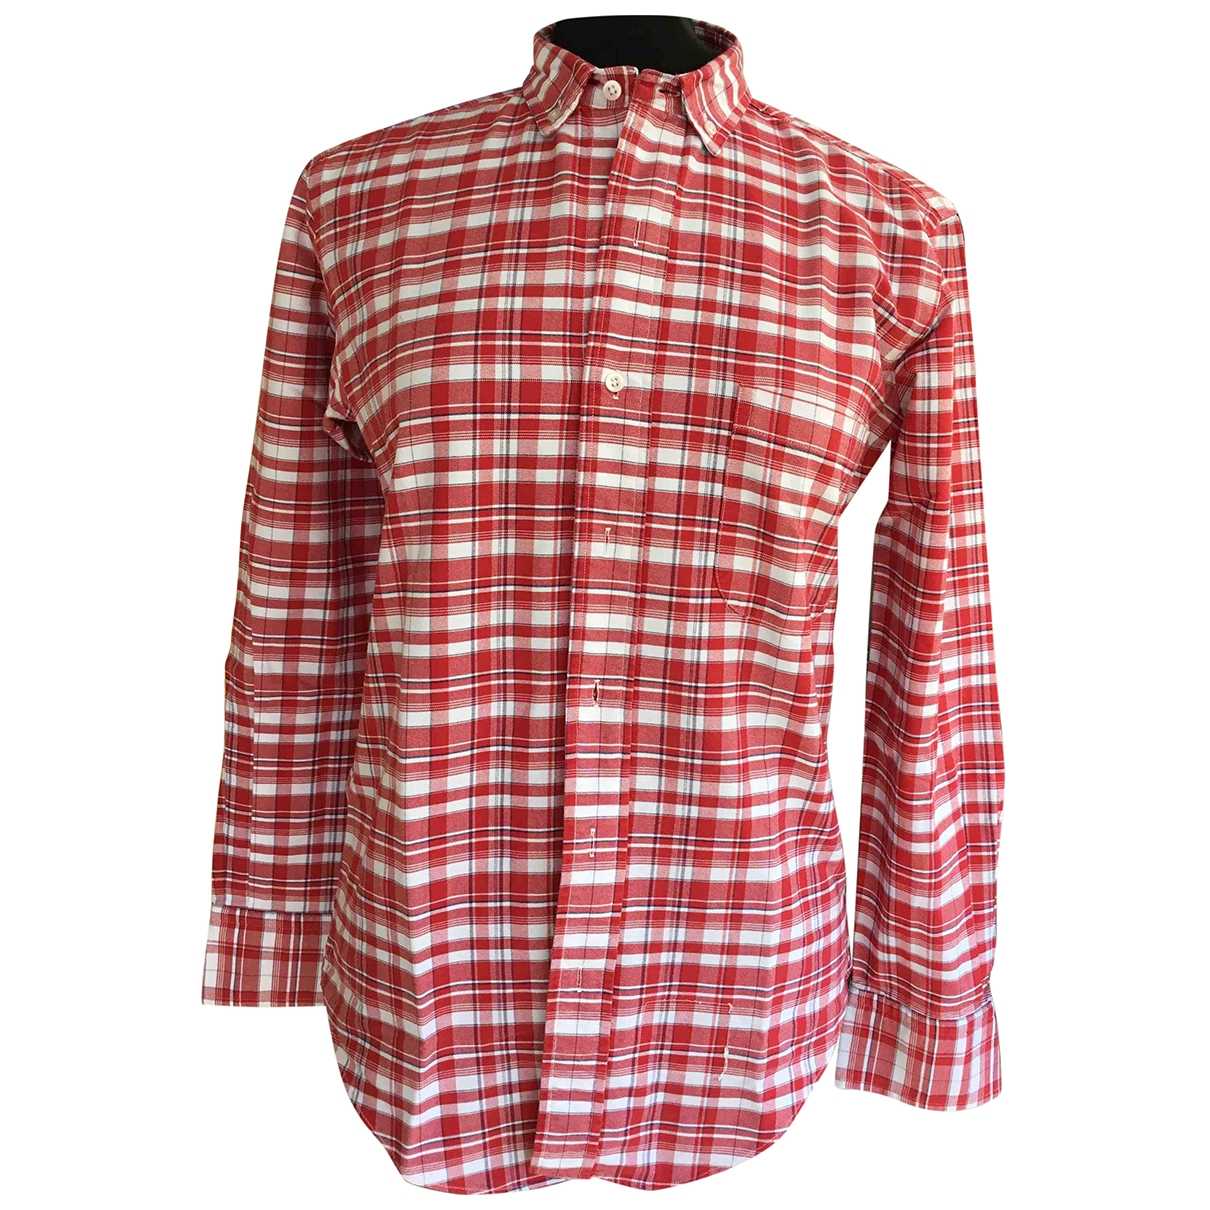 Thom Browne \N Red Cotton Shirts for Men S International